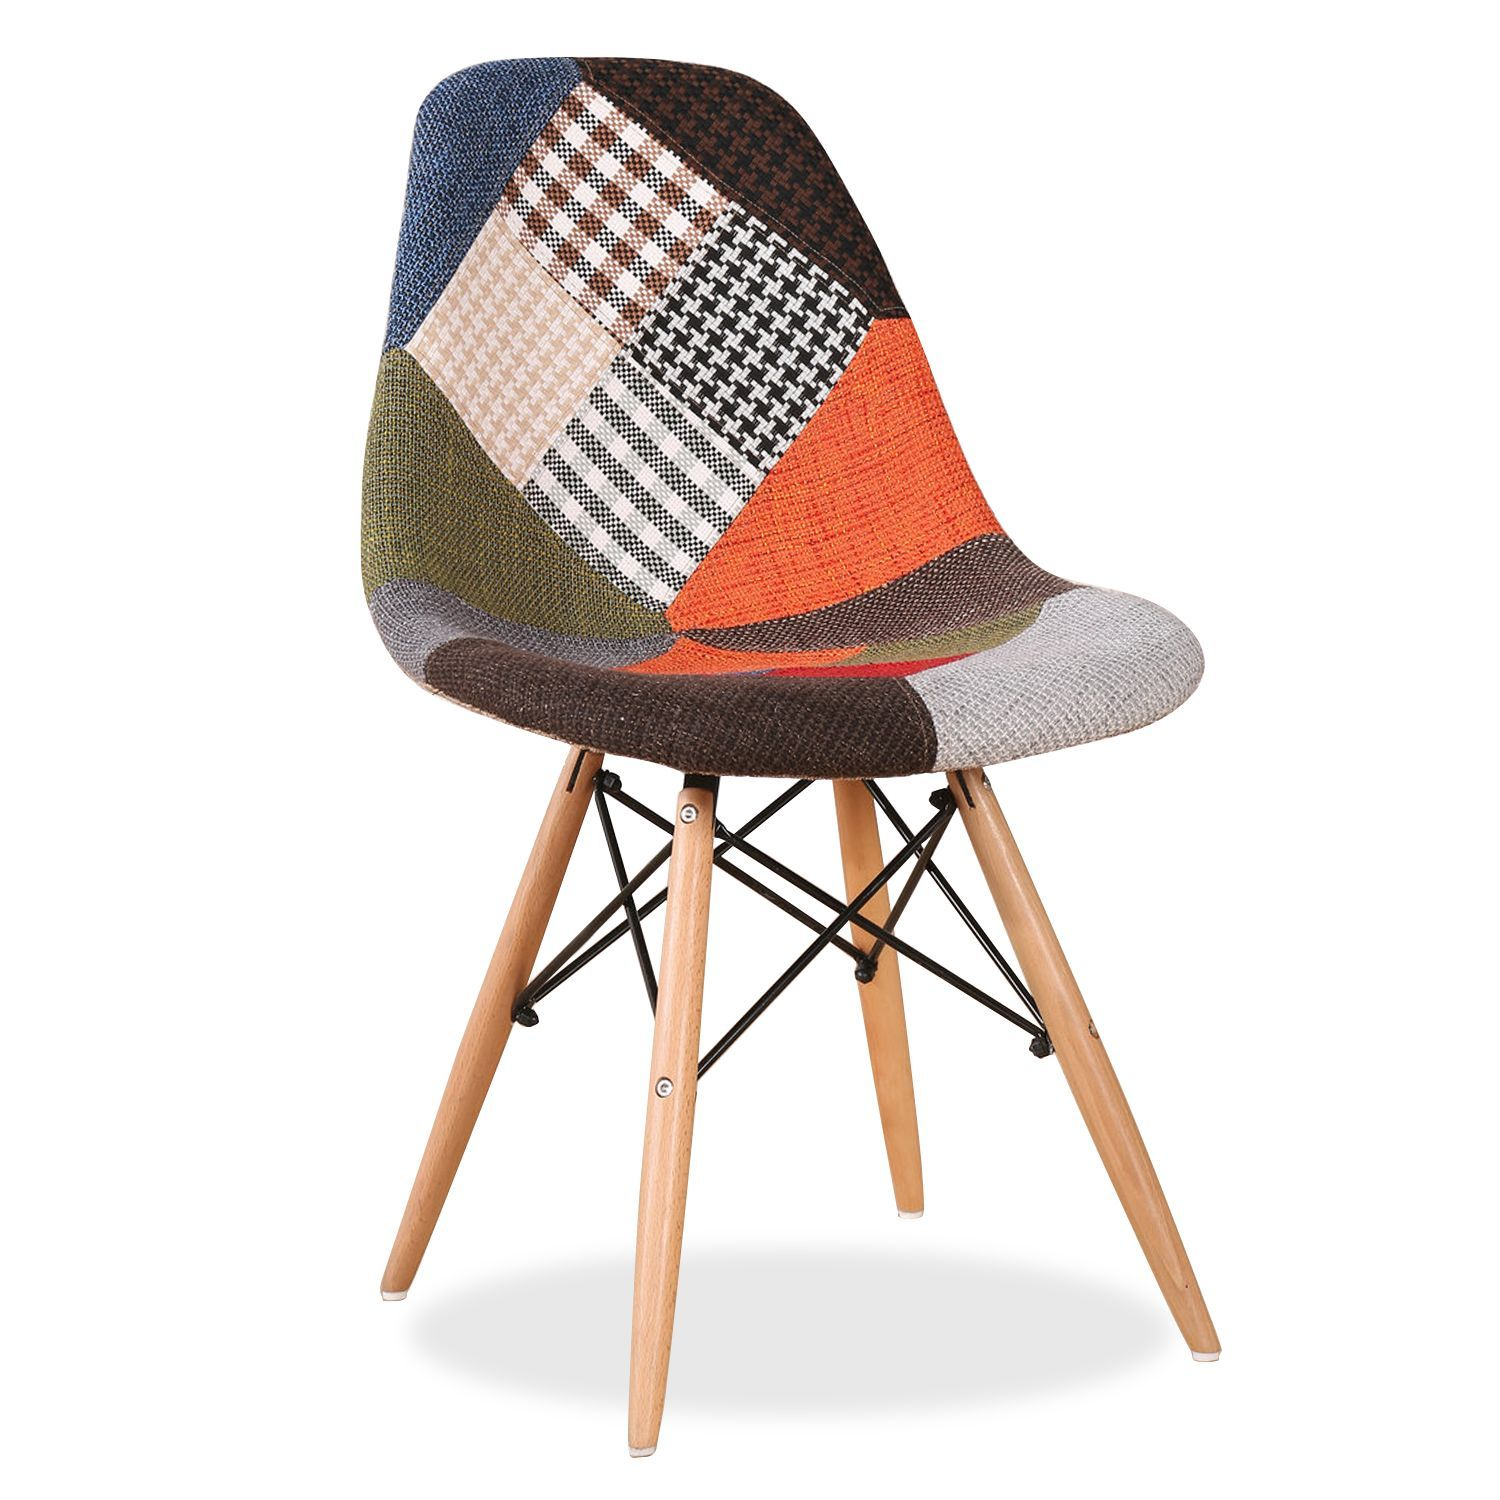 31d7aa552 WOODEN Chair -PATCHWORK Upholstery- | előszoba | Patchwork chair ...